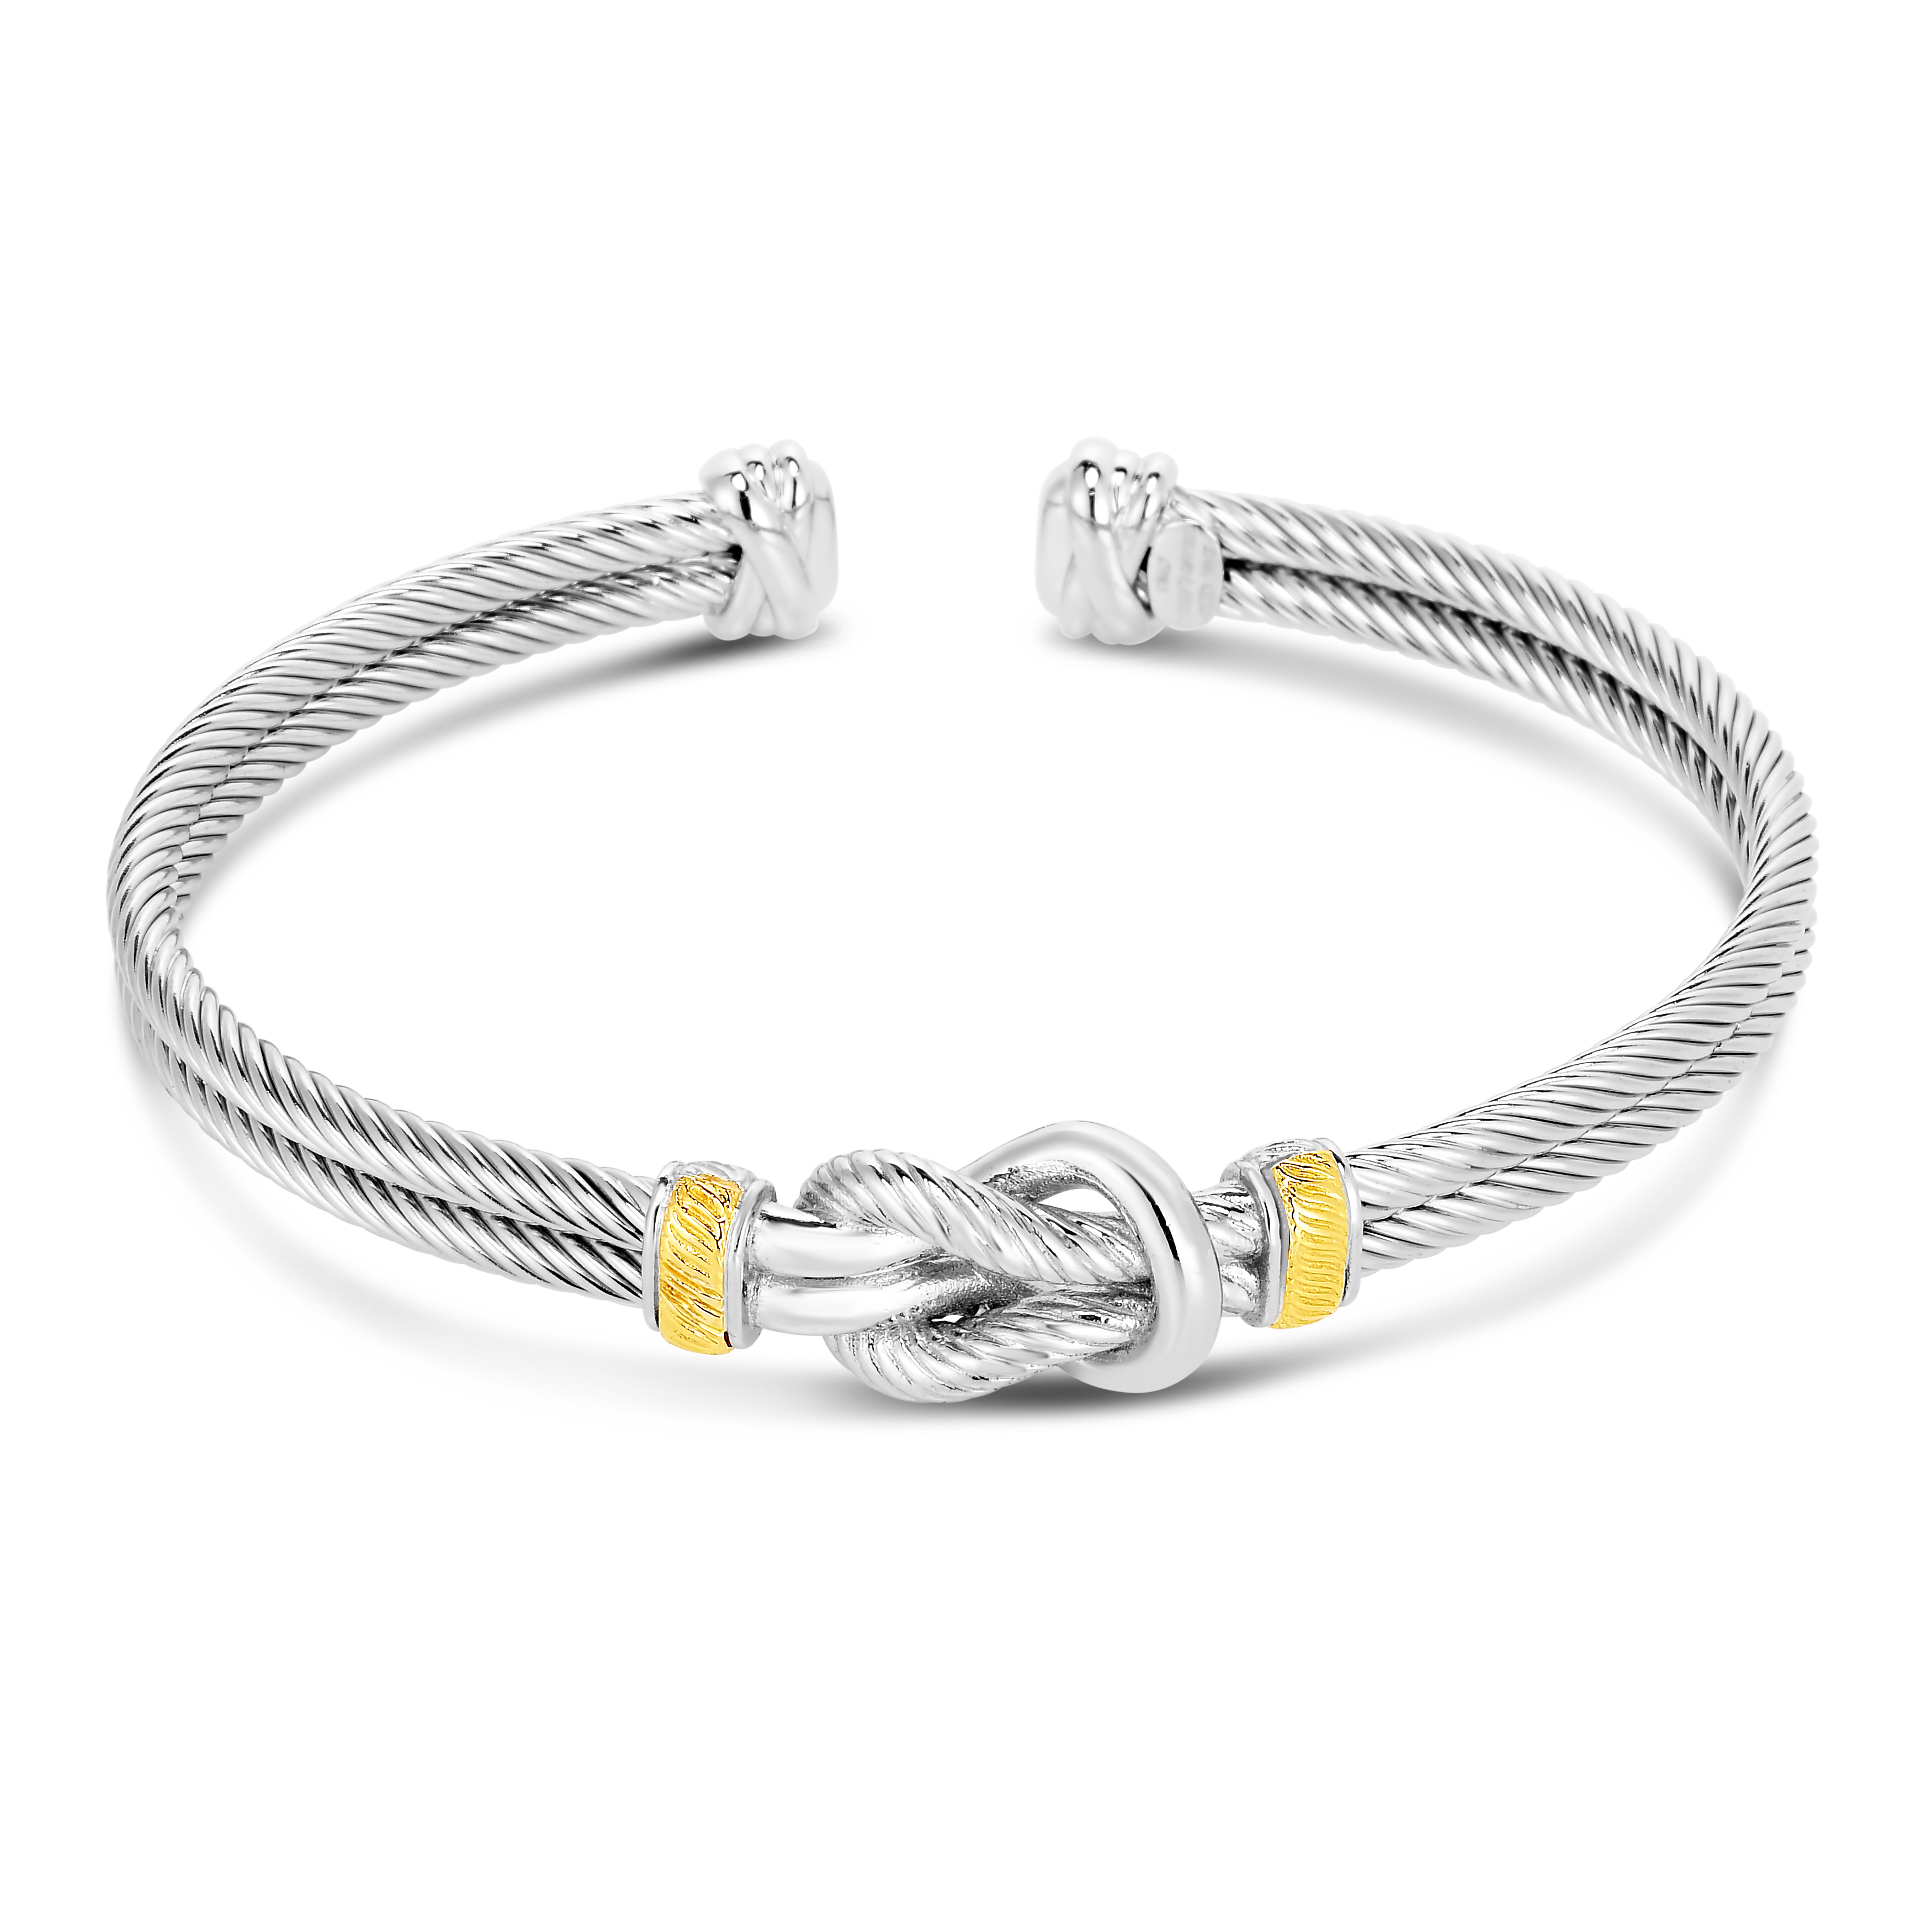 Sterling Silver & Yellow Gold Bangle Bracelet James Wolf Jewelers Mason, OH